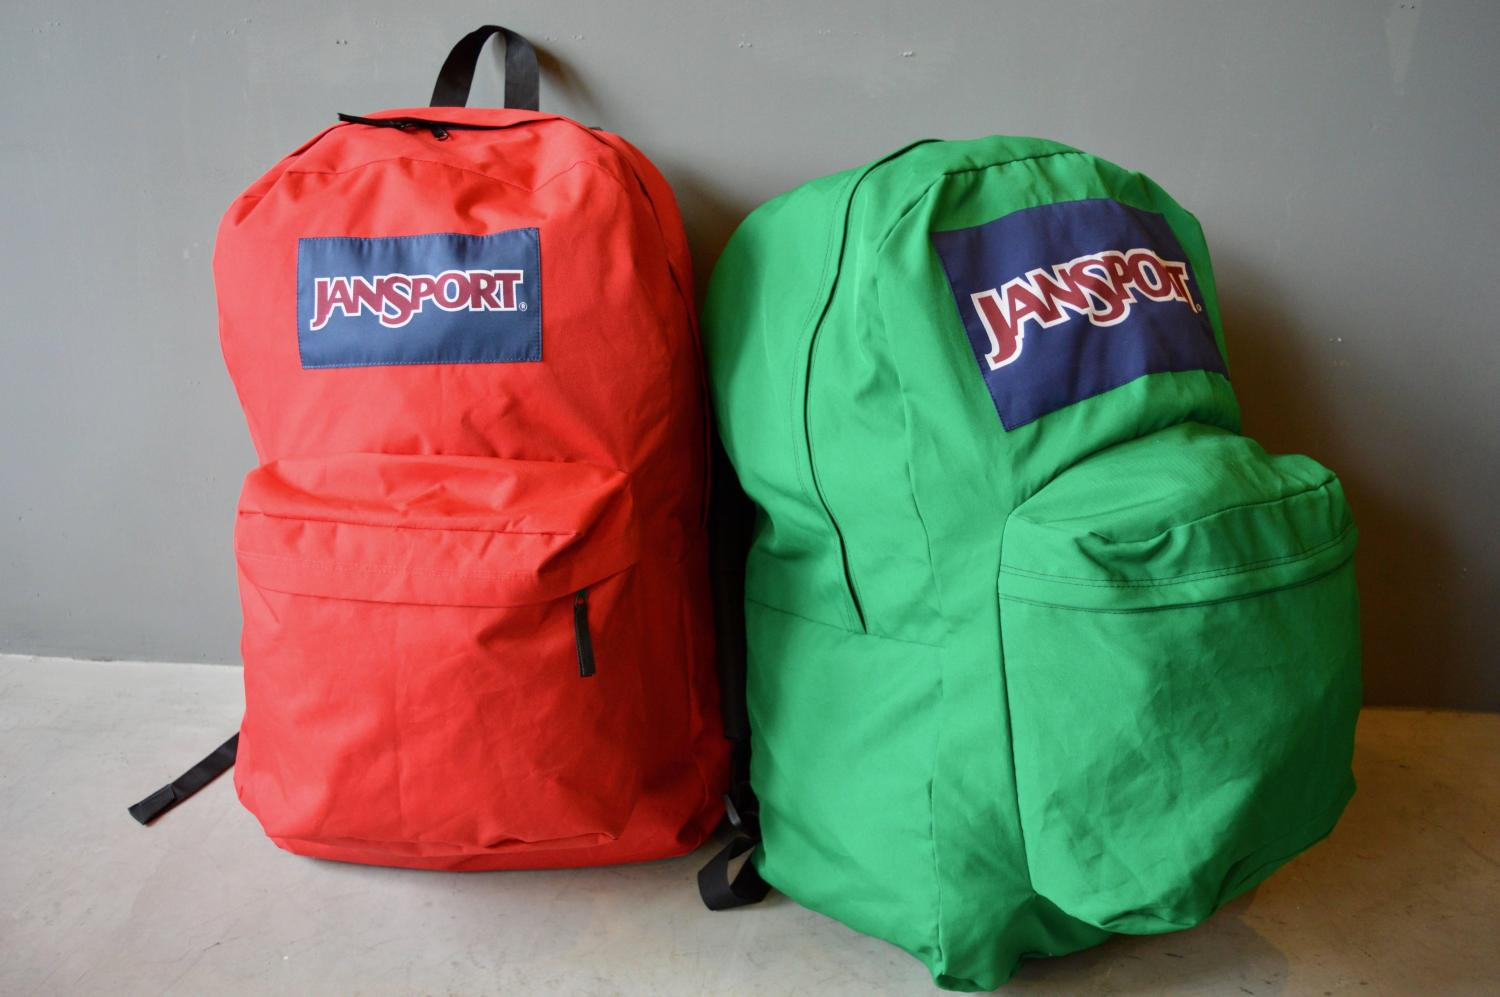 Giant Backpack - Jumbo Jansport Backpack